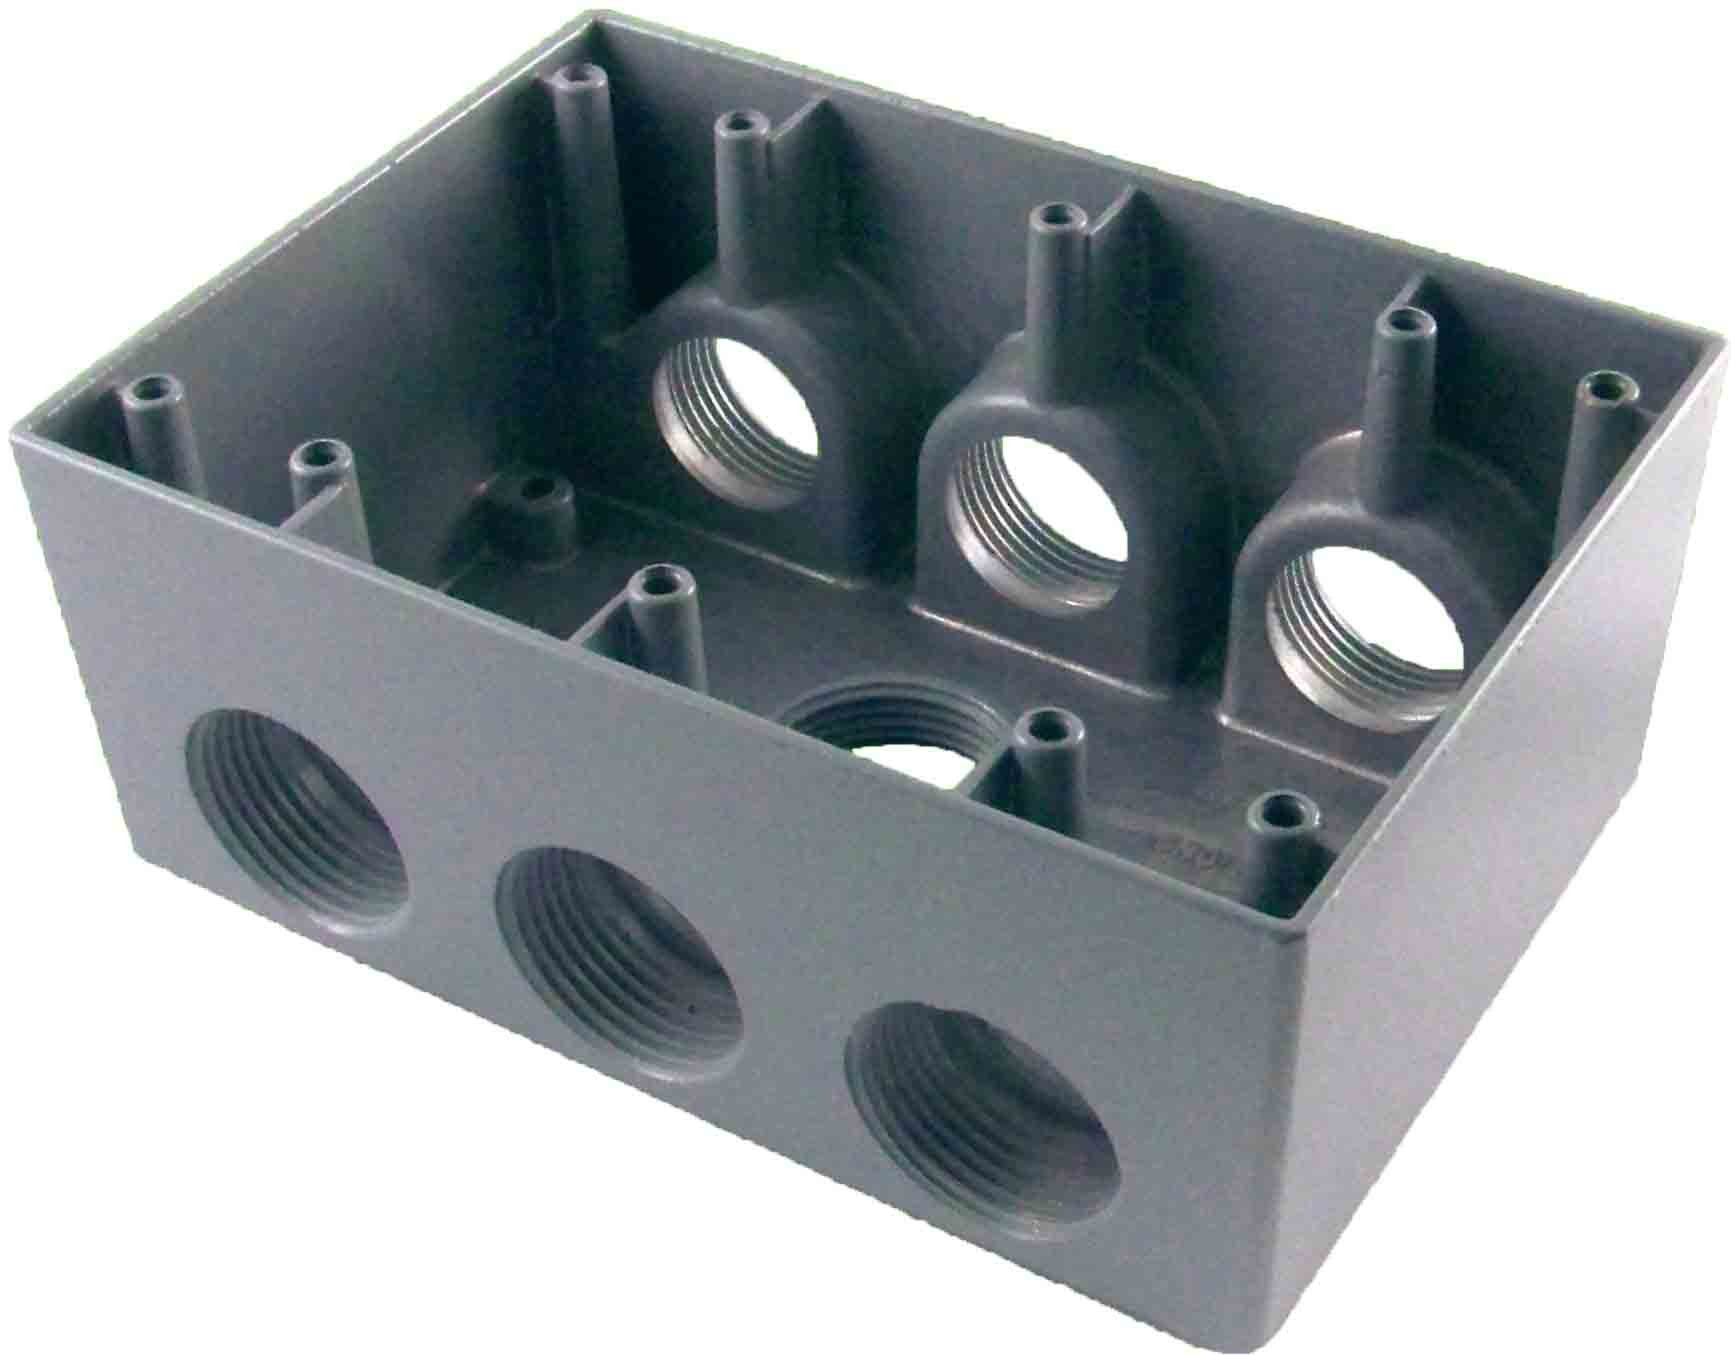 Made in USA Weatherproof Electrical Outlet Box (7) 1'' Holes - Gray